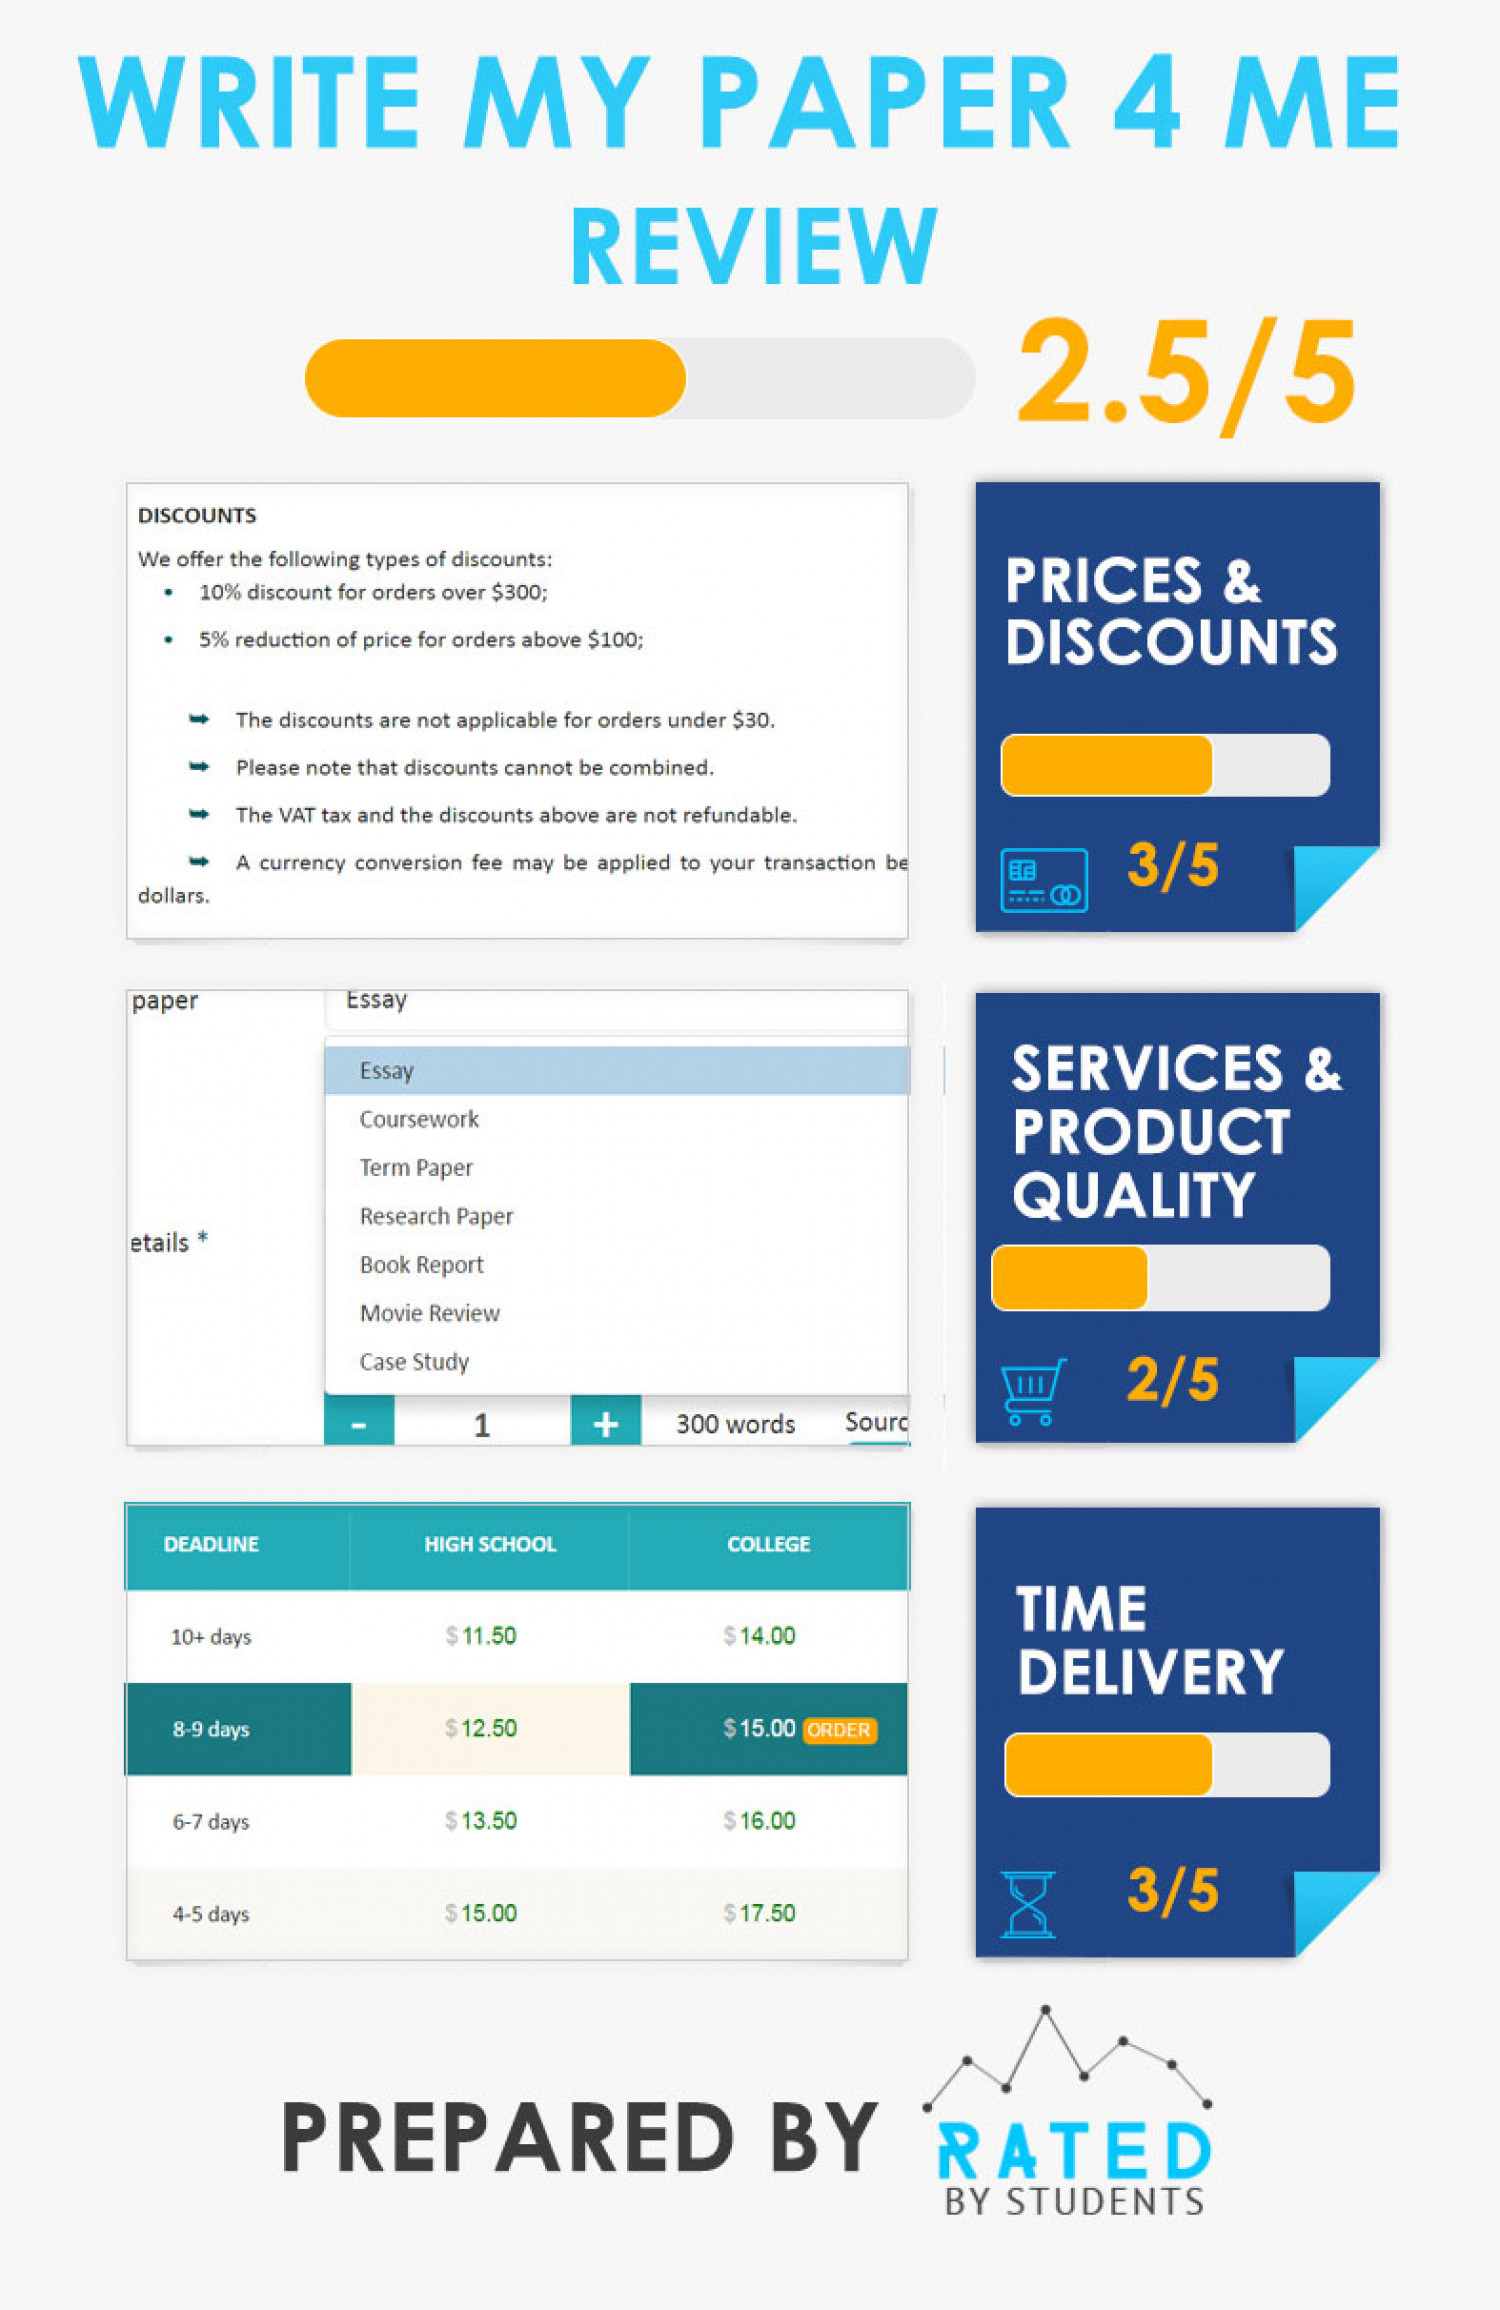 Fresh infographic about products and service of WriteMyPaper4Me by Rated by Students website Infographic